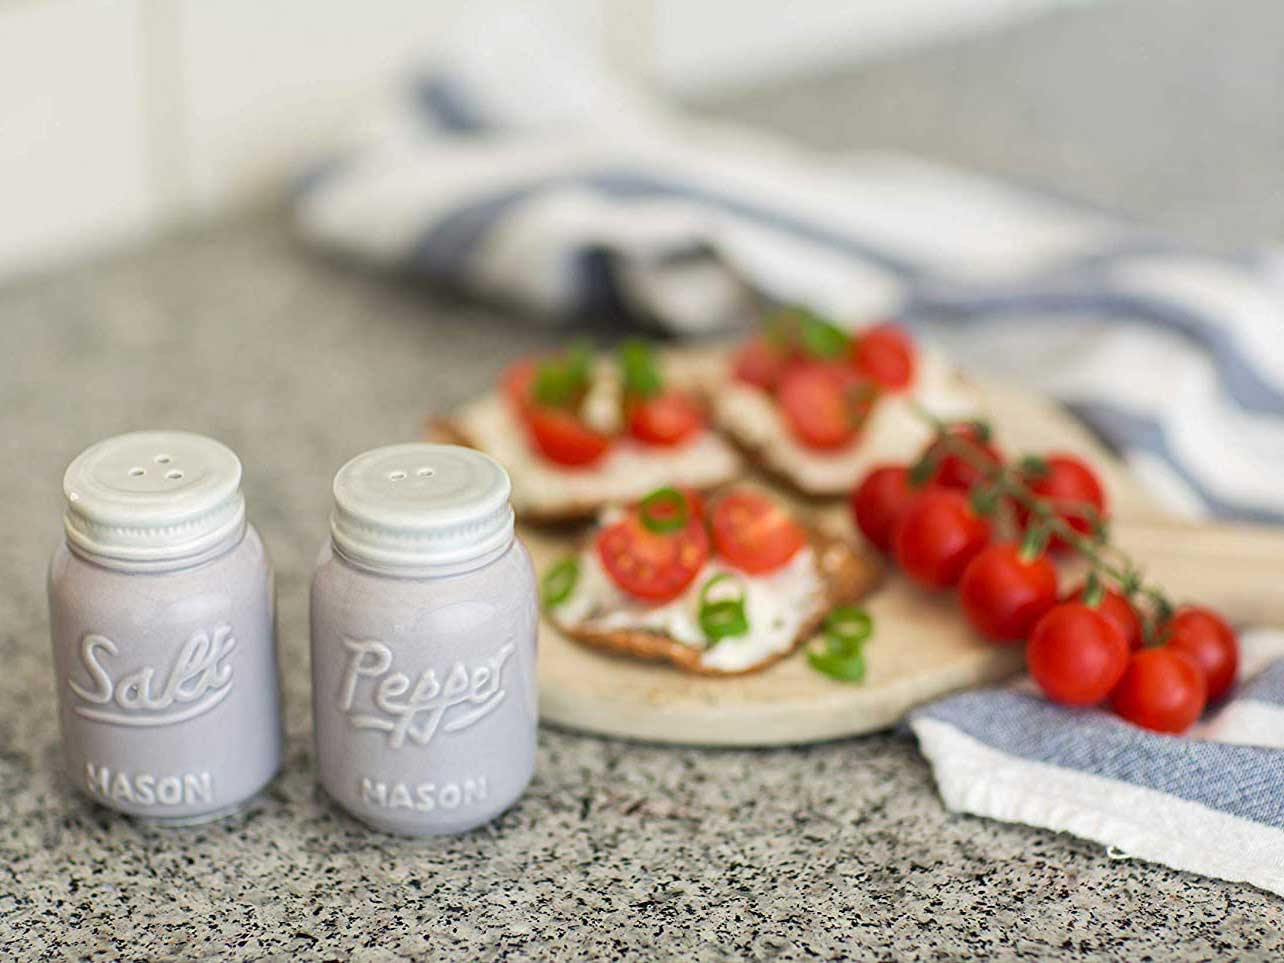 Salt and pepper shakers on kitchen counter.